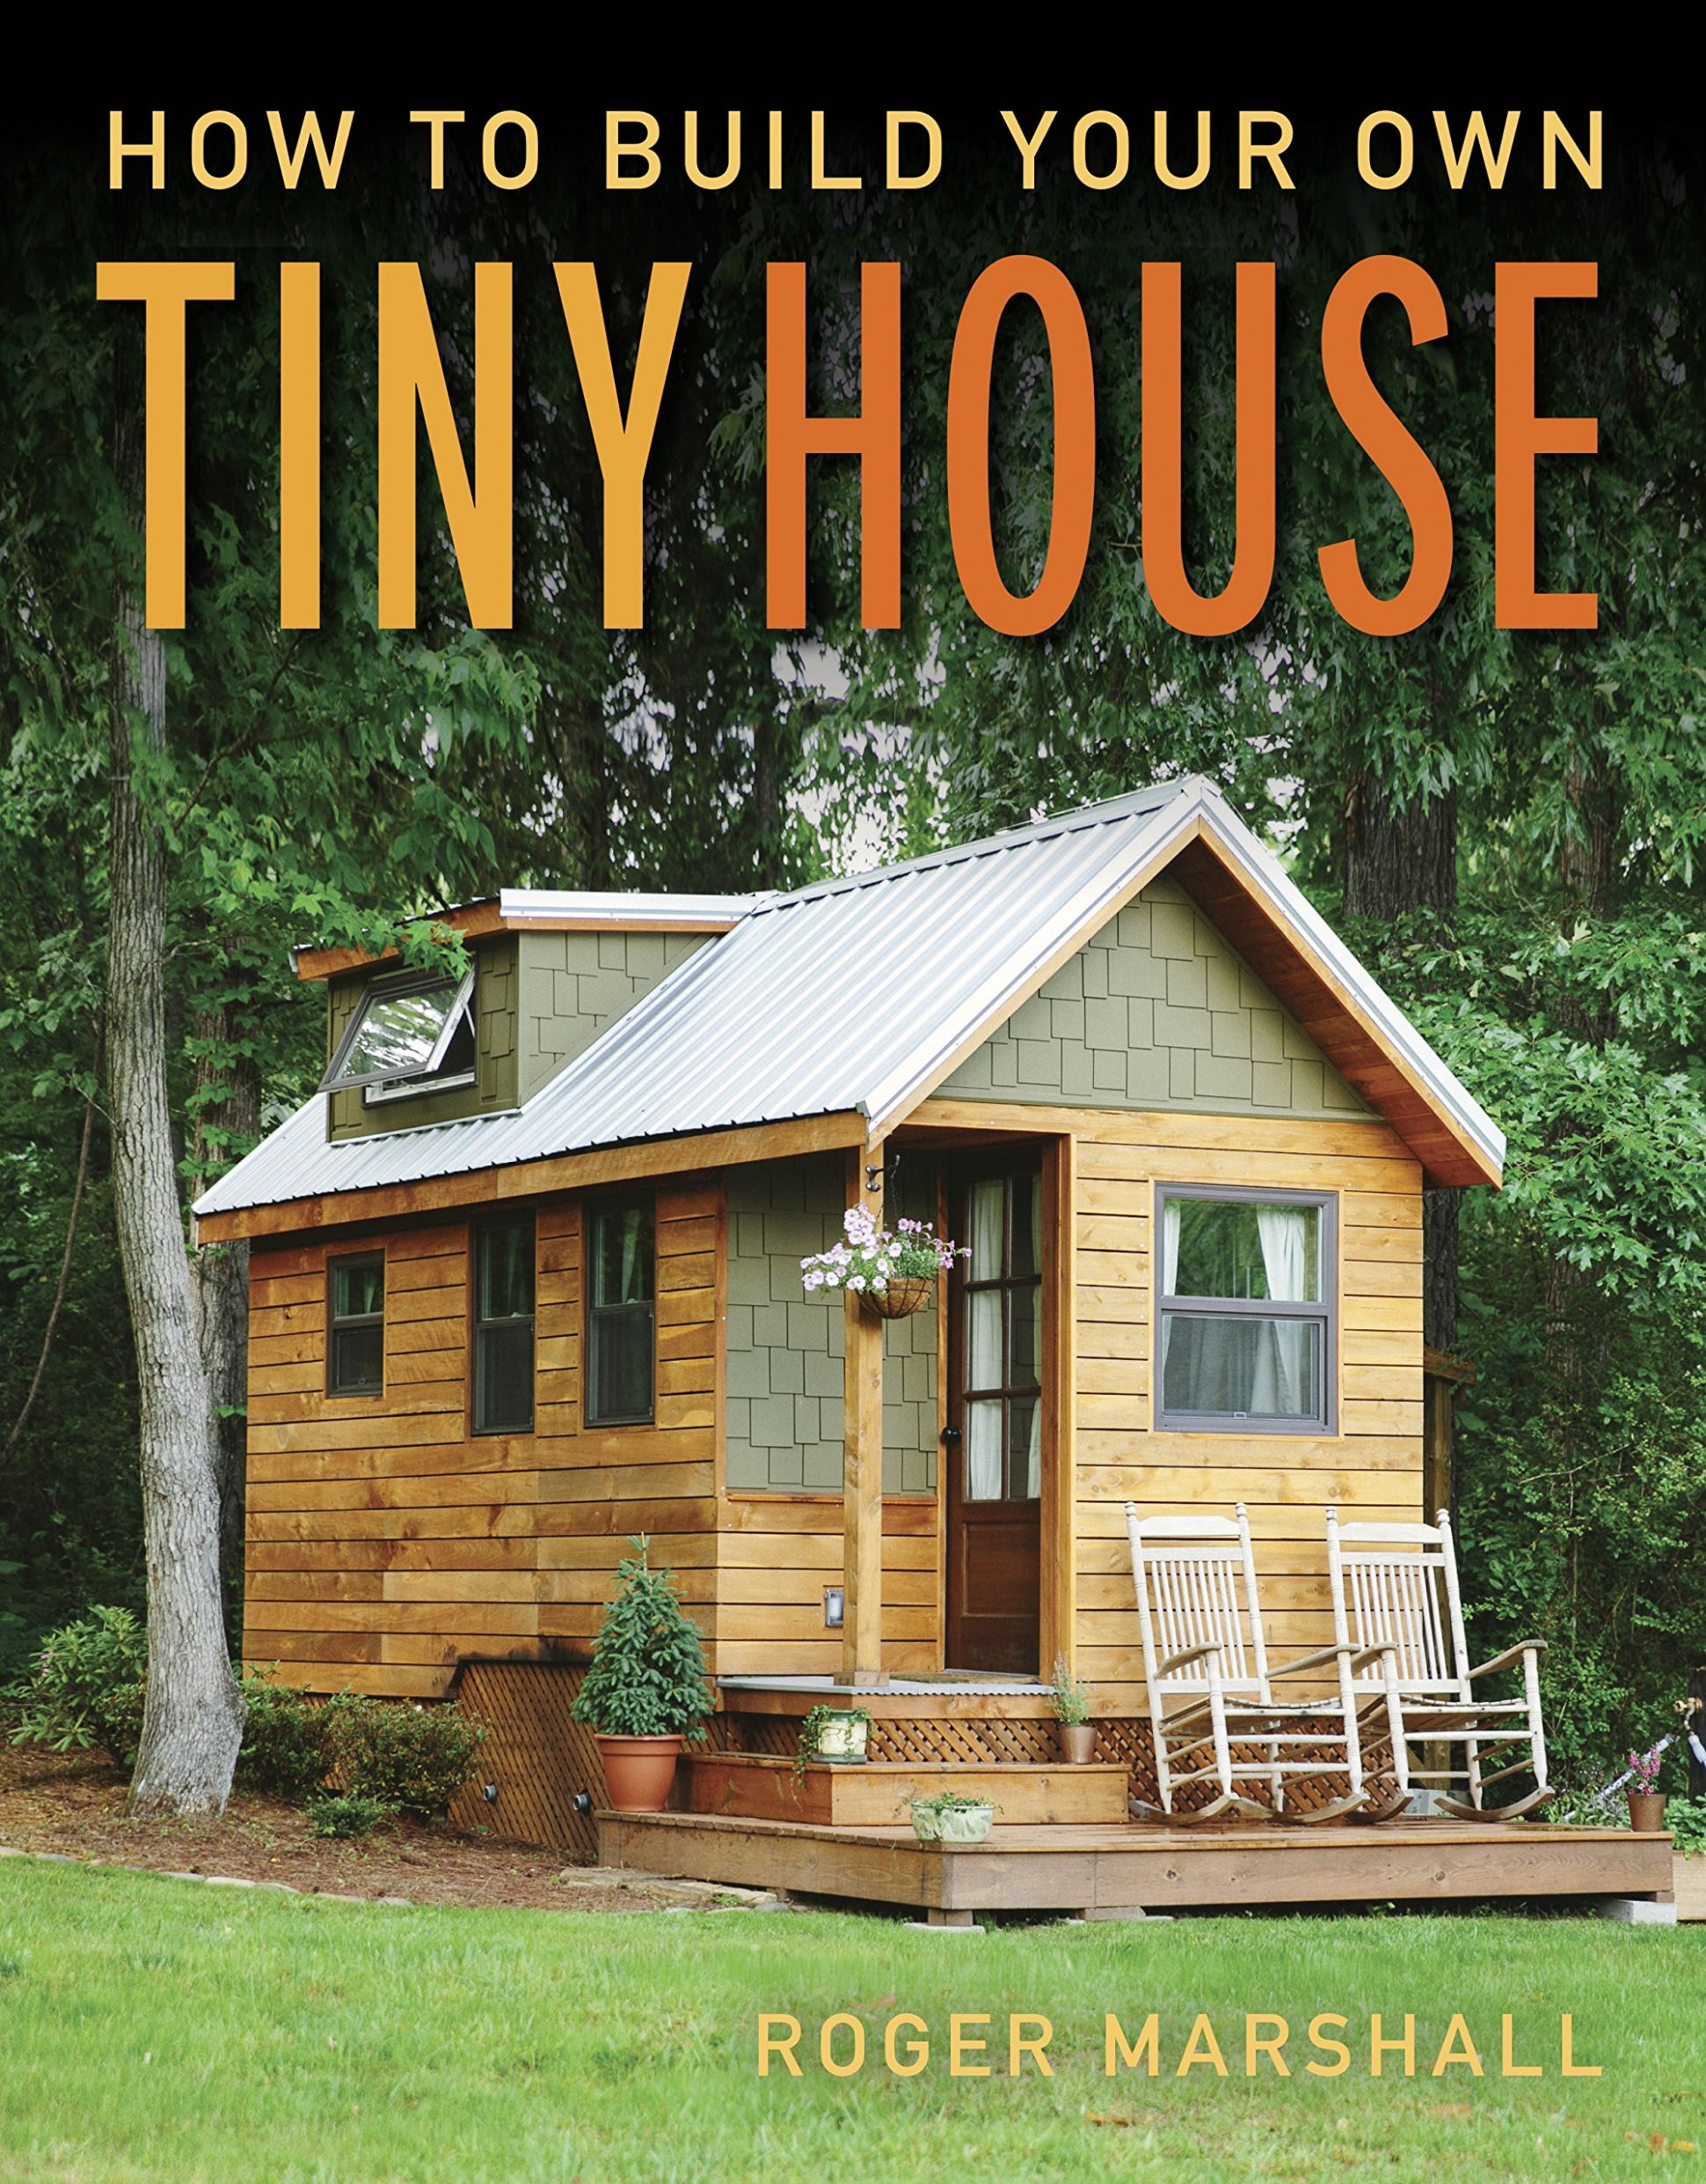 How to Build Your Own Tiny House: Amazon.de: Roger Marshall ..